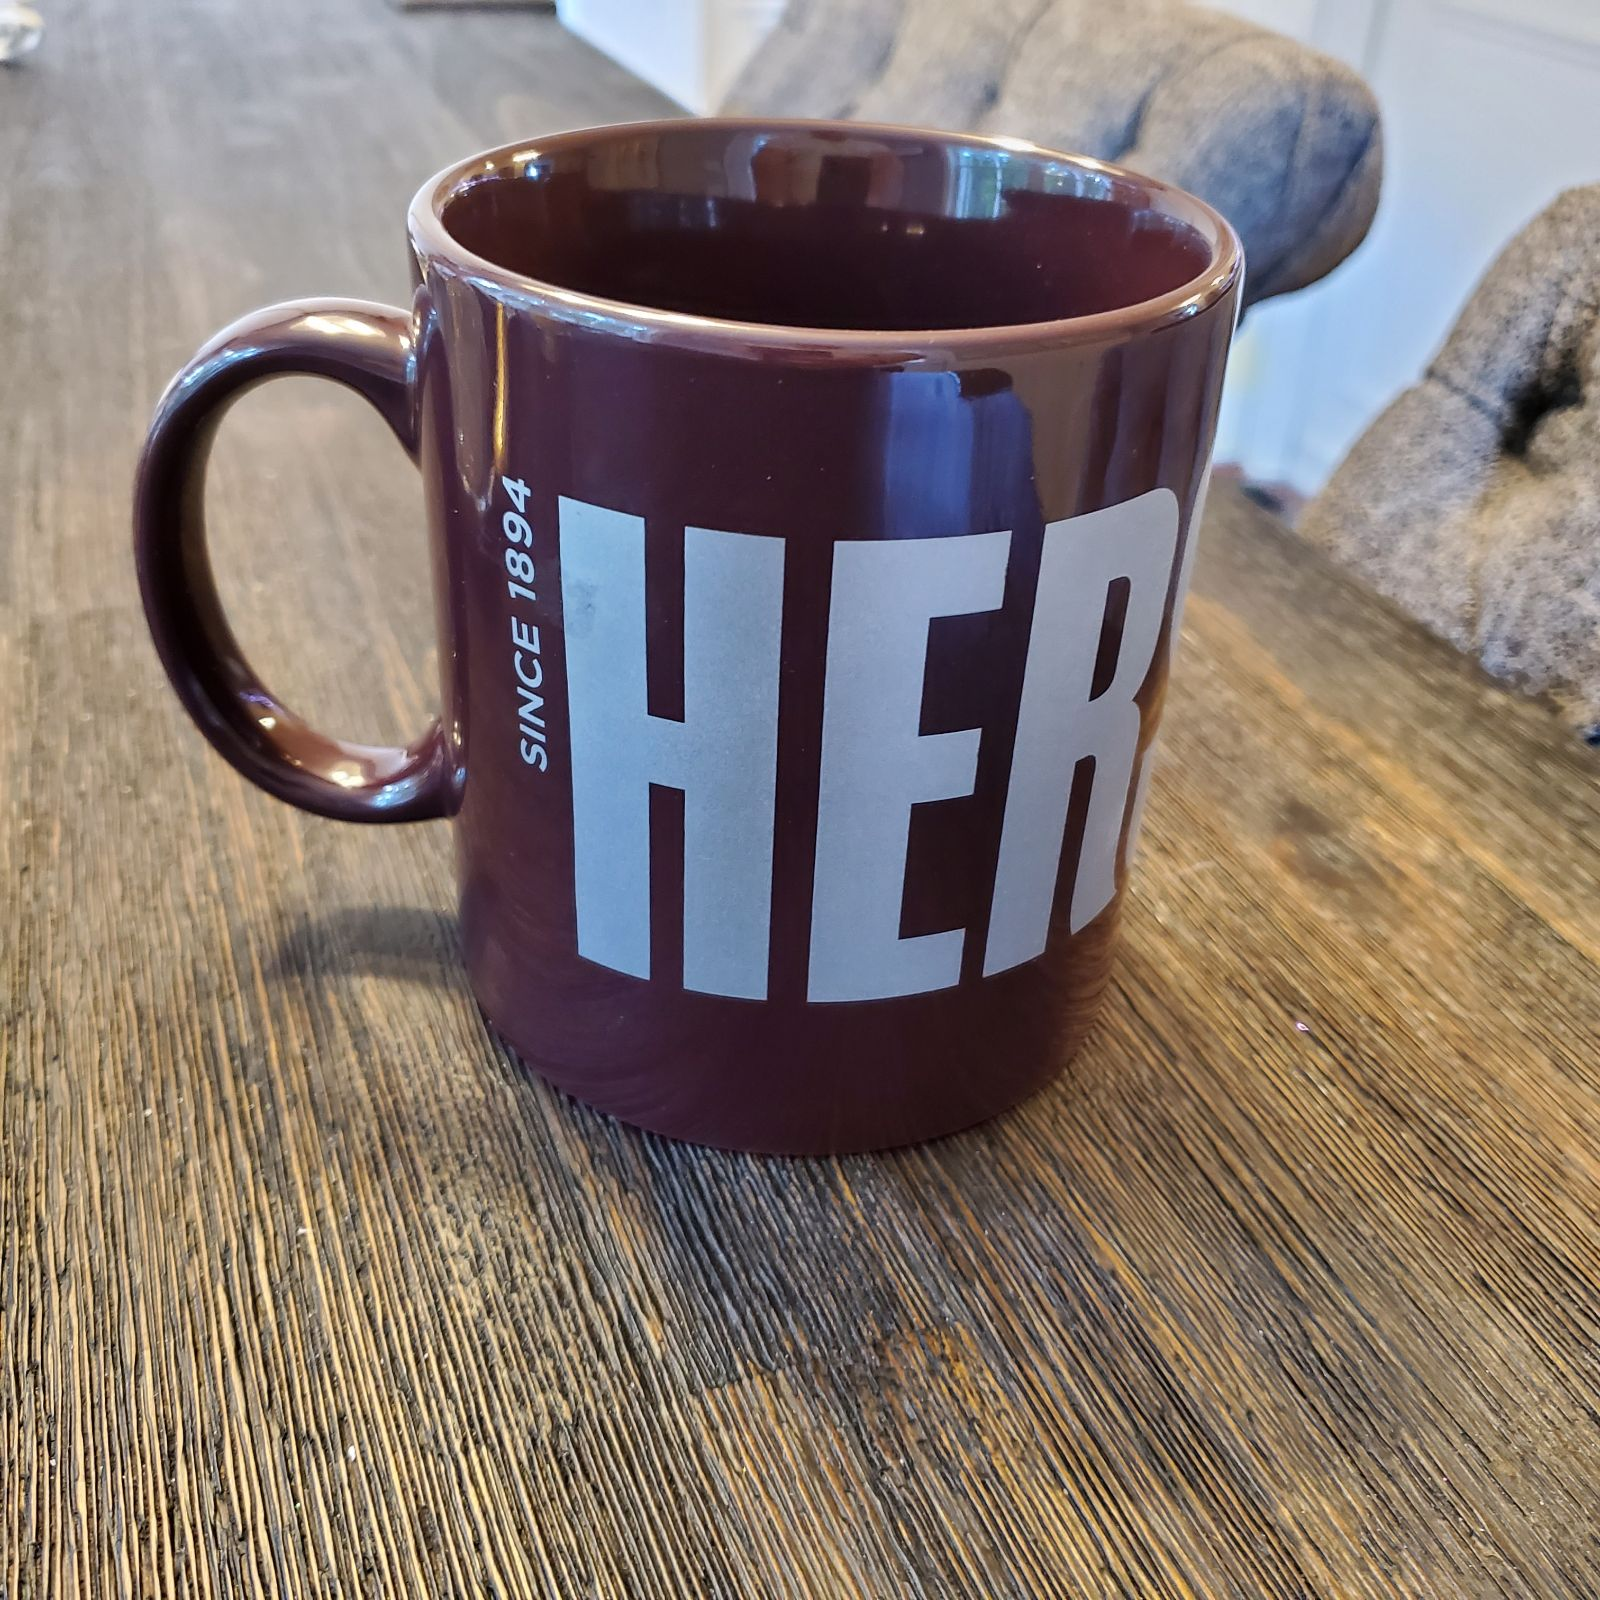 Hershey's Chocolate Since 1894 16 oz mug